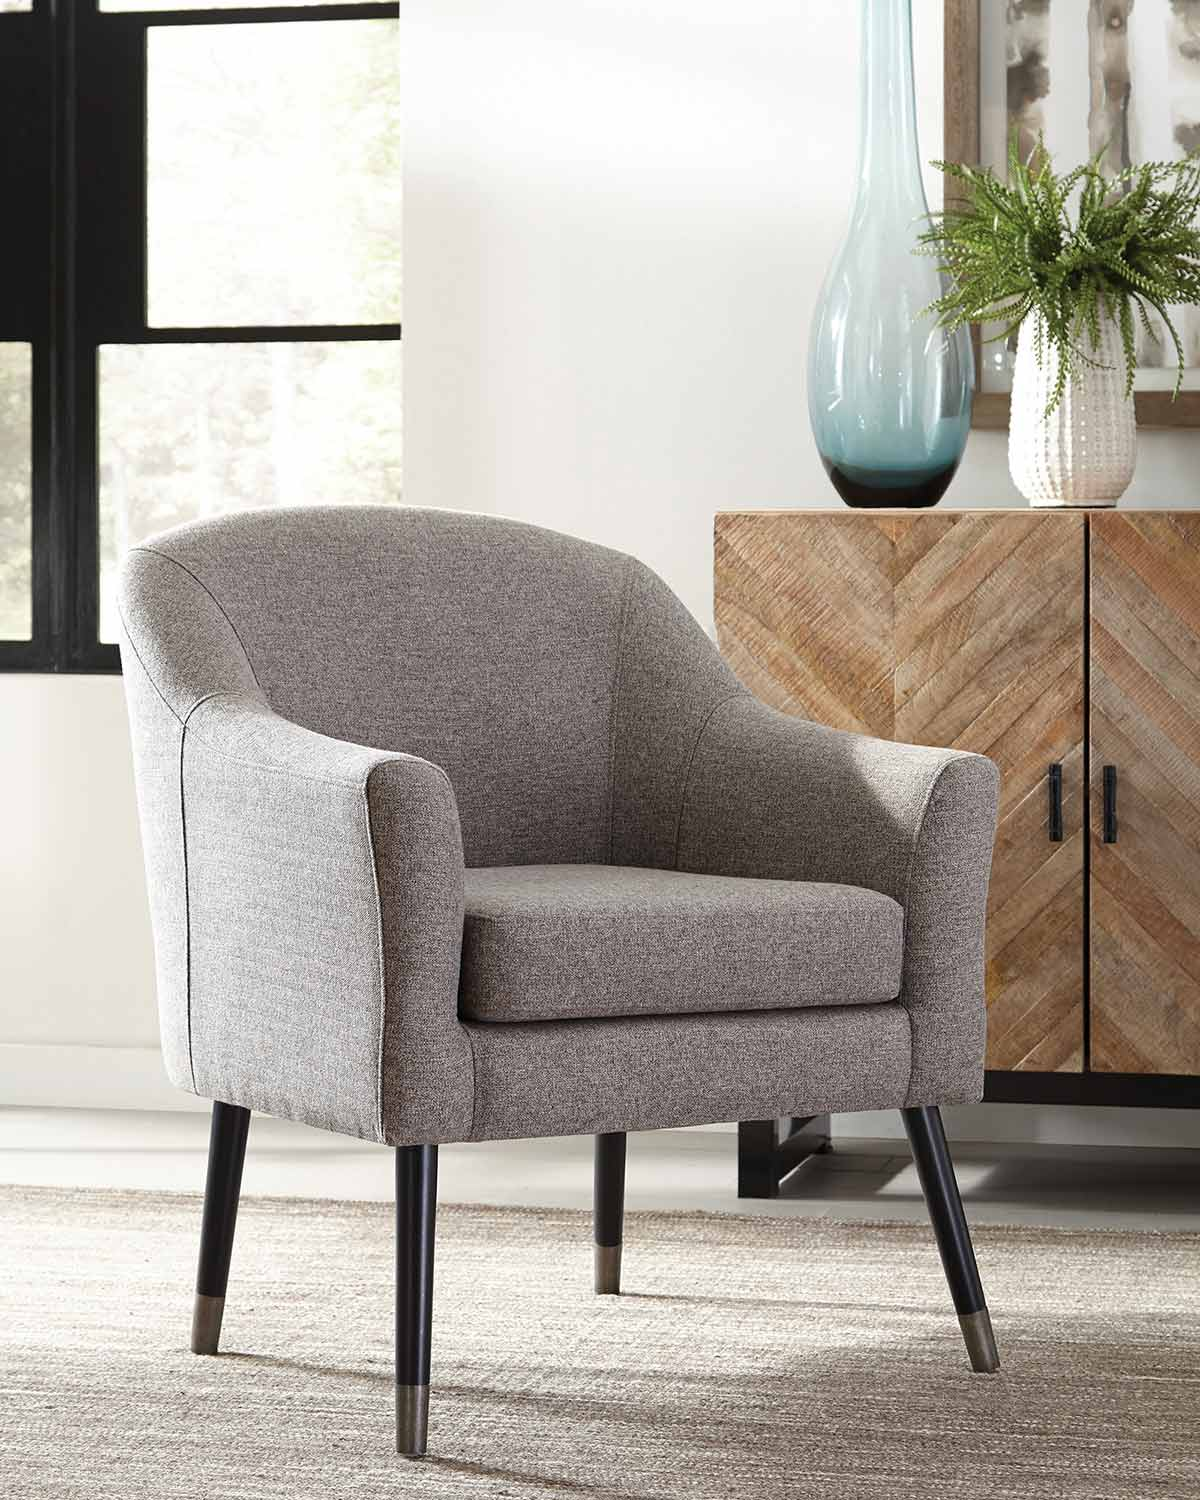 Coaster 903378 Accent Chair - Grey/Black